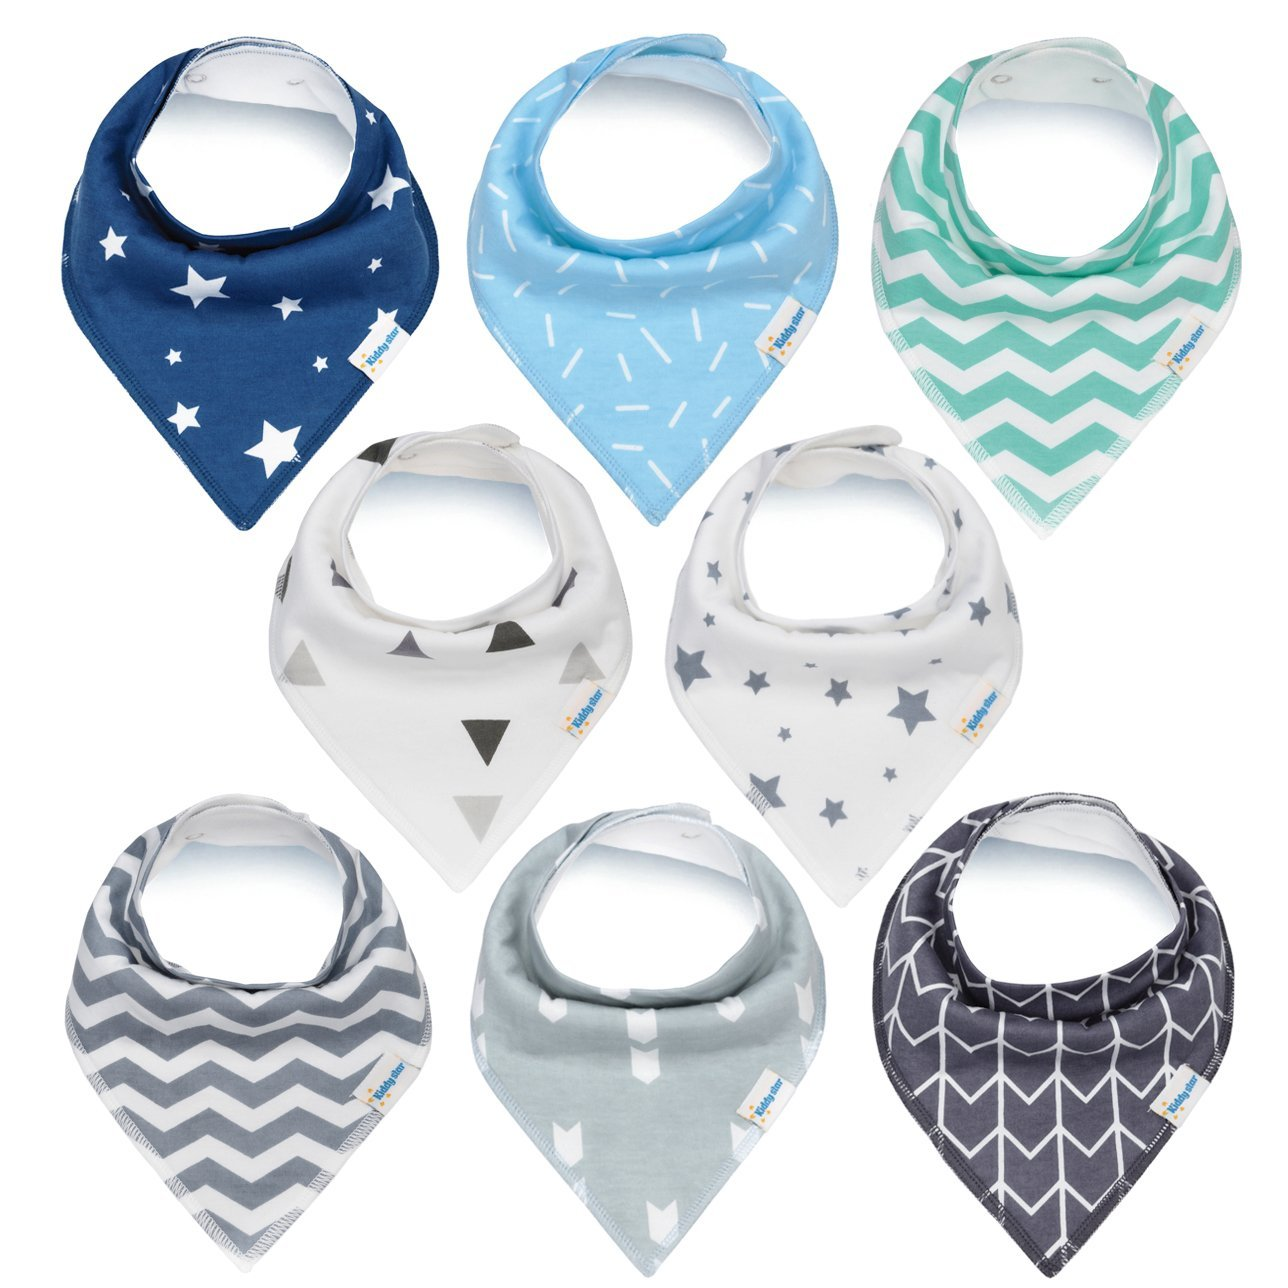 Baby Bandana Drool Bibs, Unisex 8-Pack Gift Set for Drooling and Teething, Organic Cotton, Soft and Absorbent, Hypoallergenic - for Boys and Girls by KiddyStar (8 Pack) by KiddyStar